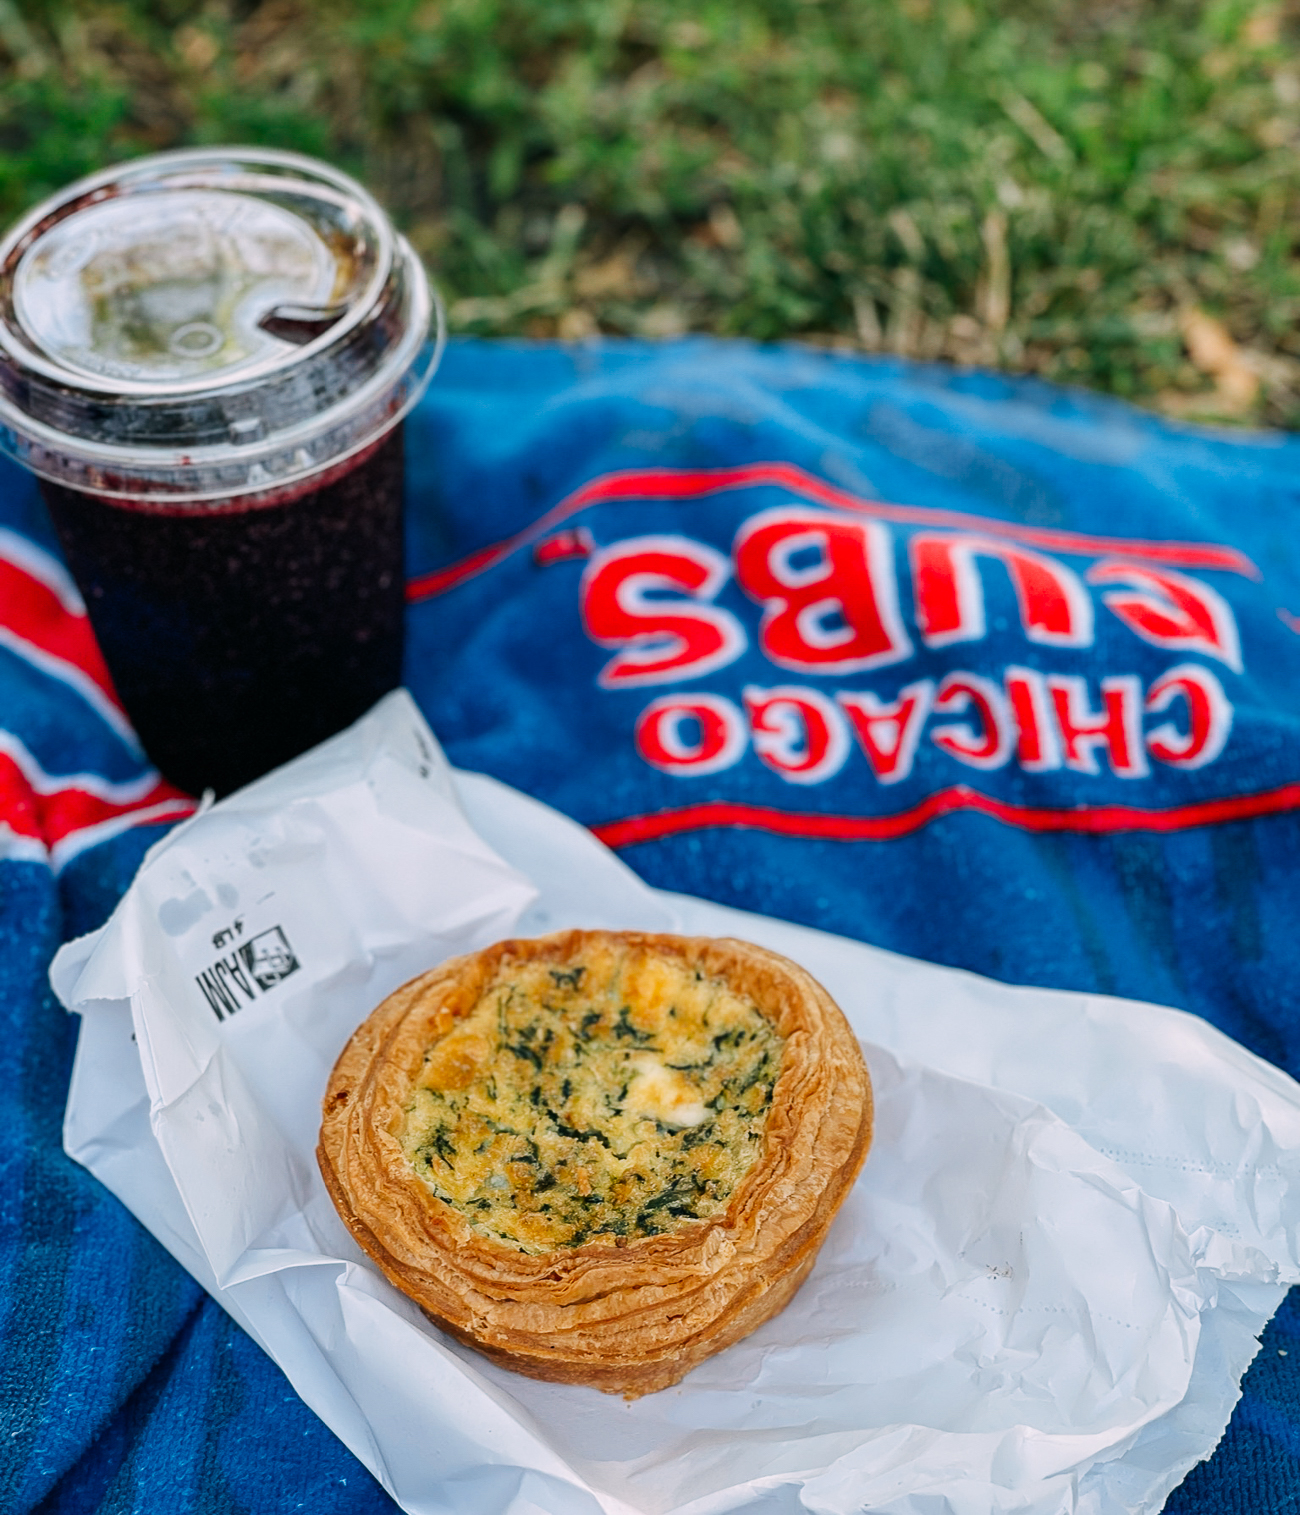 Quiche and Blueberry Smoothie in Chicago